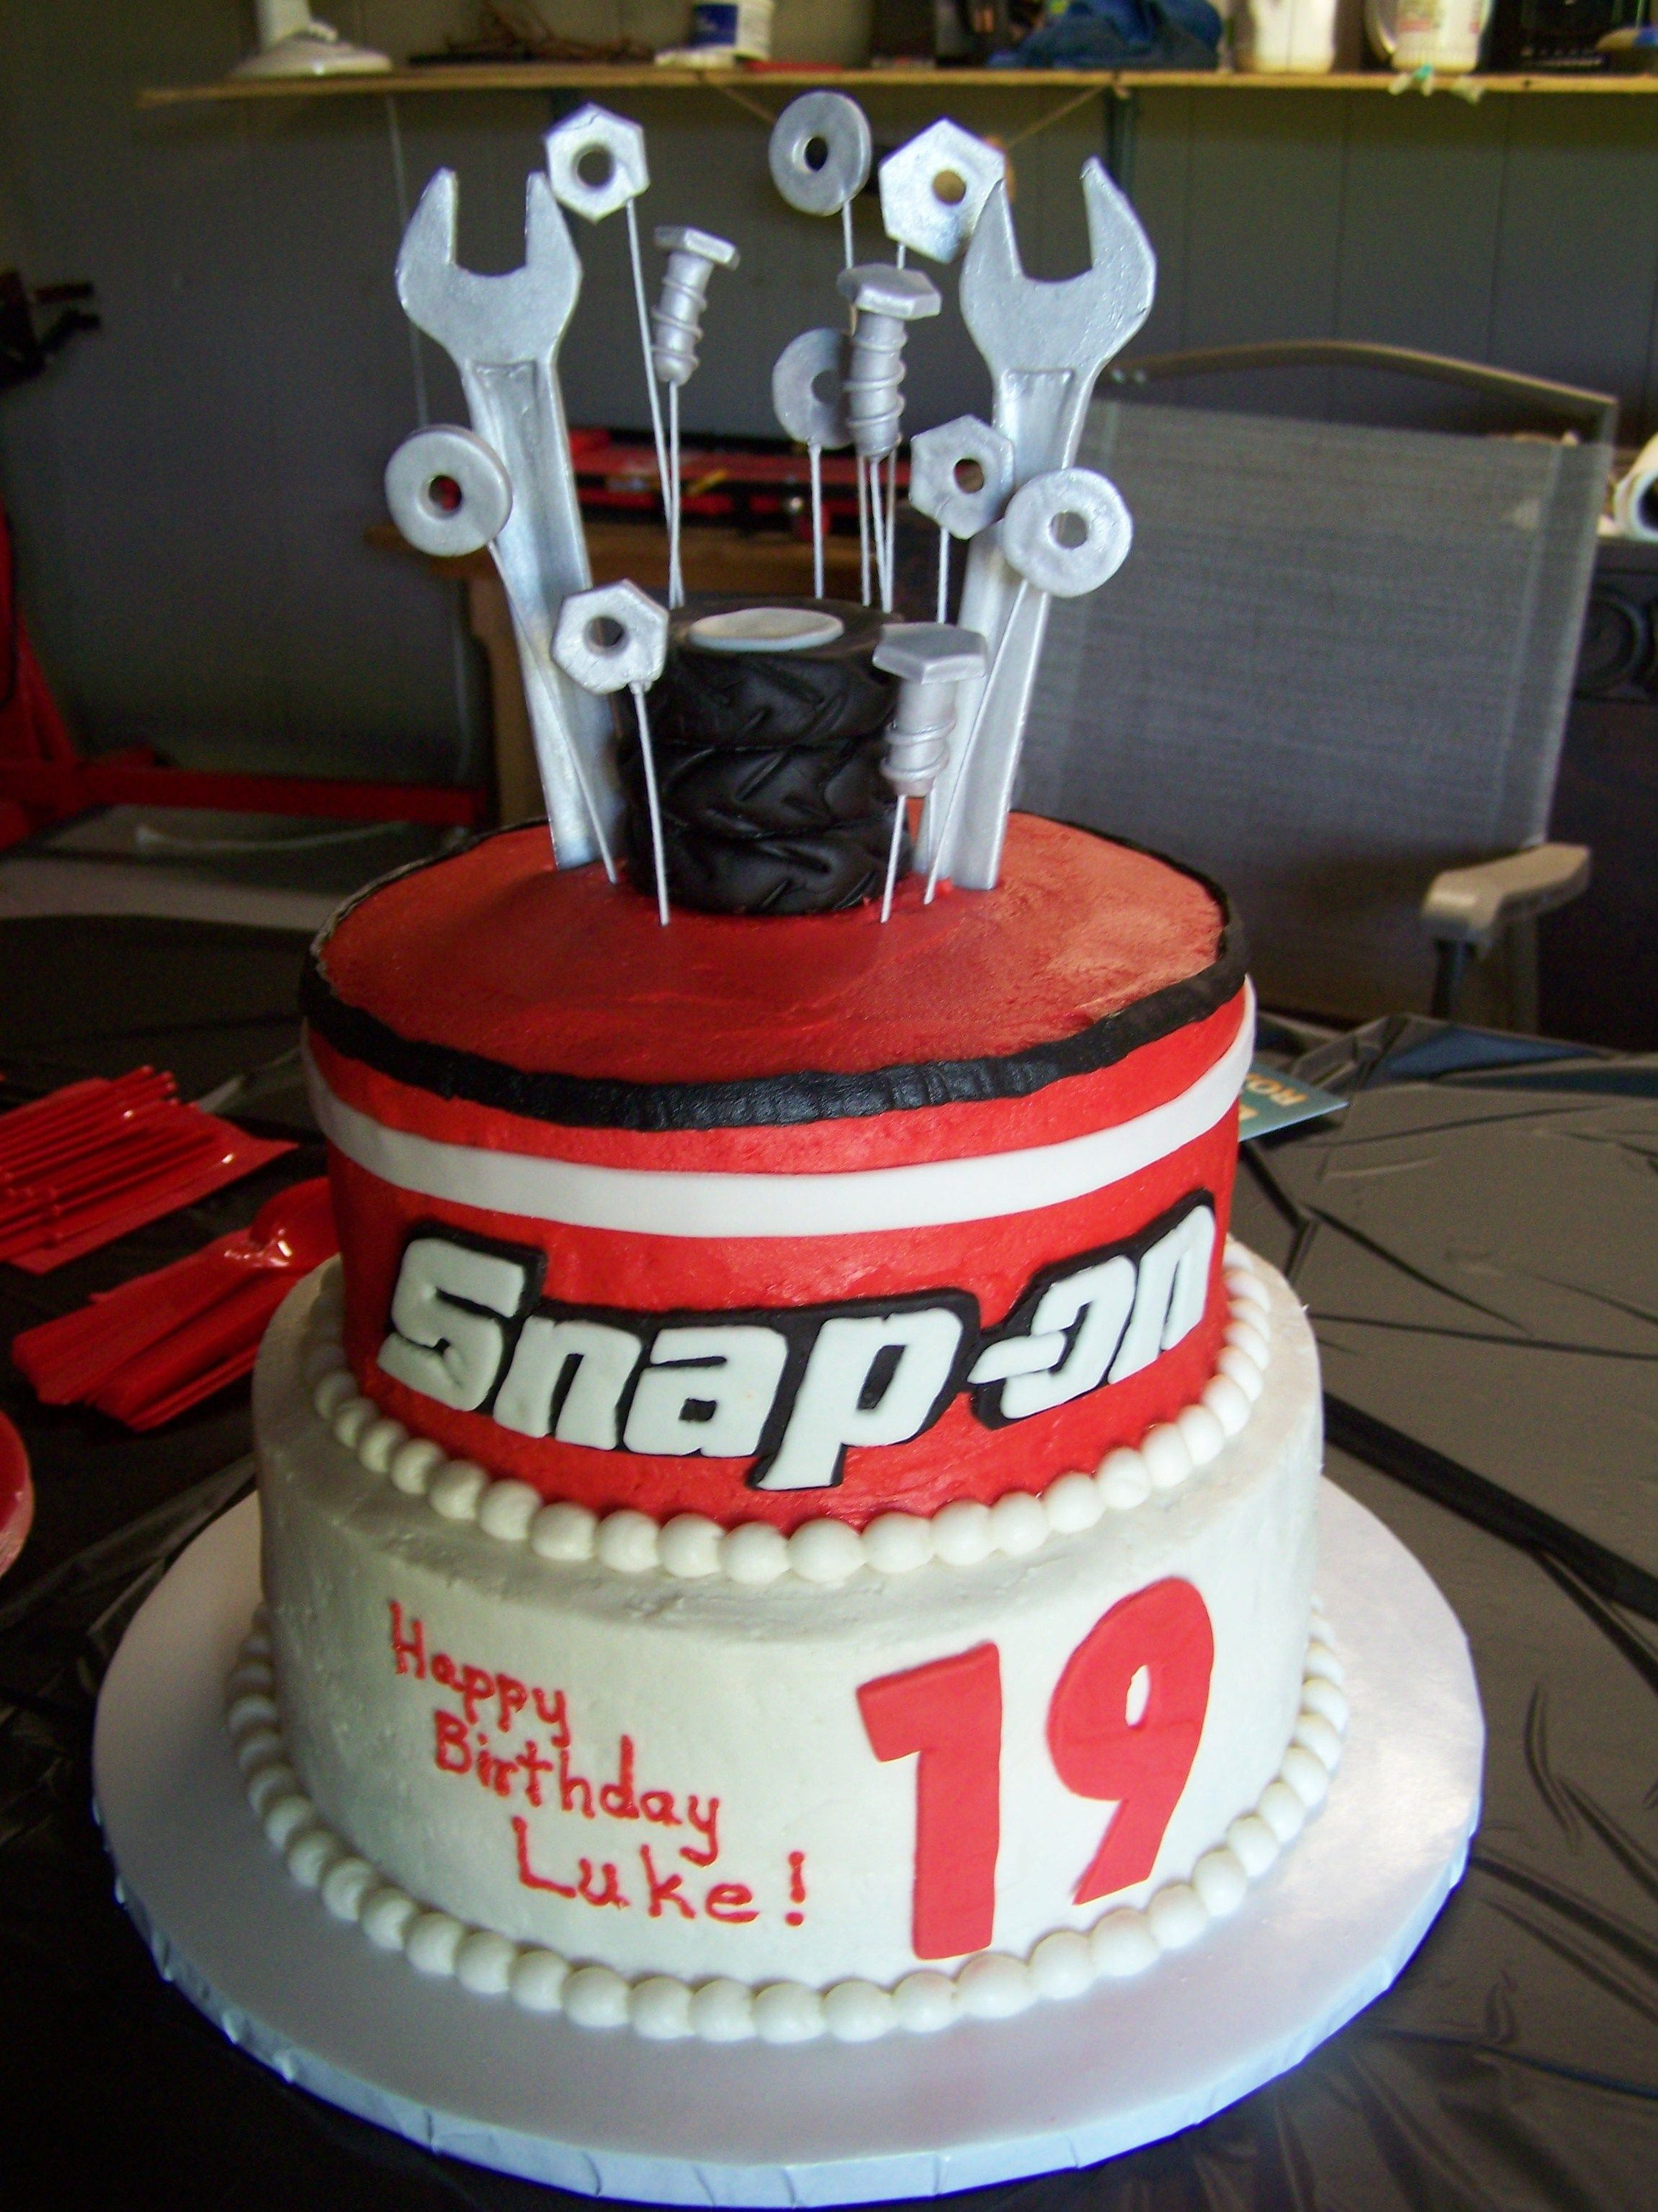 Snap On Tools Cake Gumpaste Tools Nuts And Bolts Cakes Ive